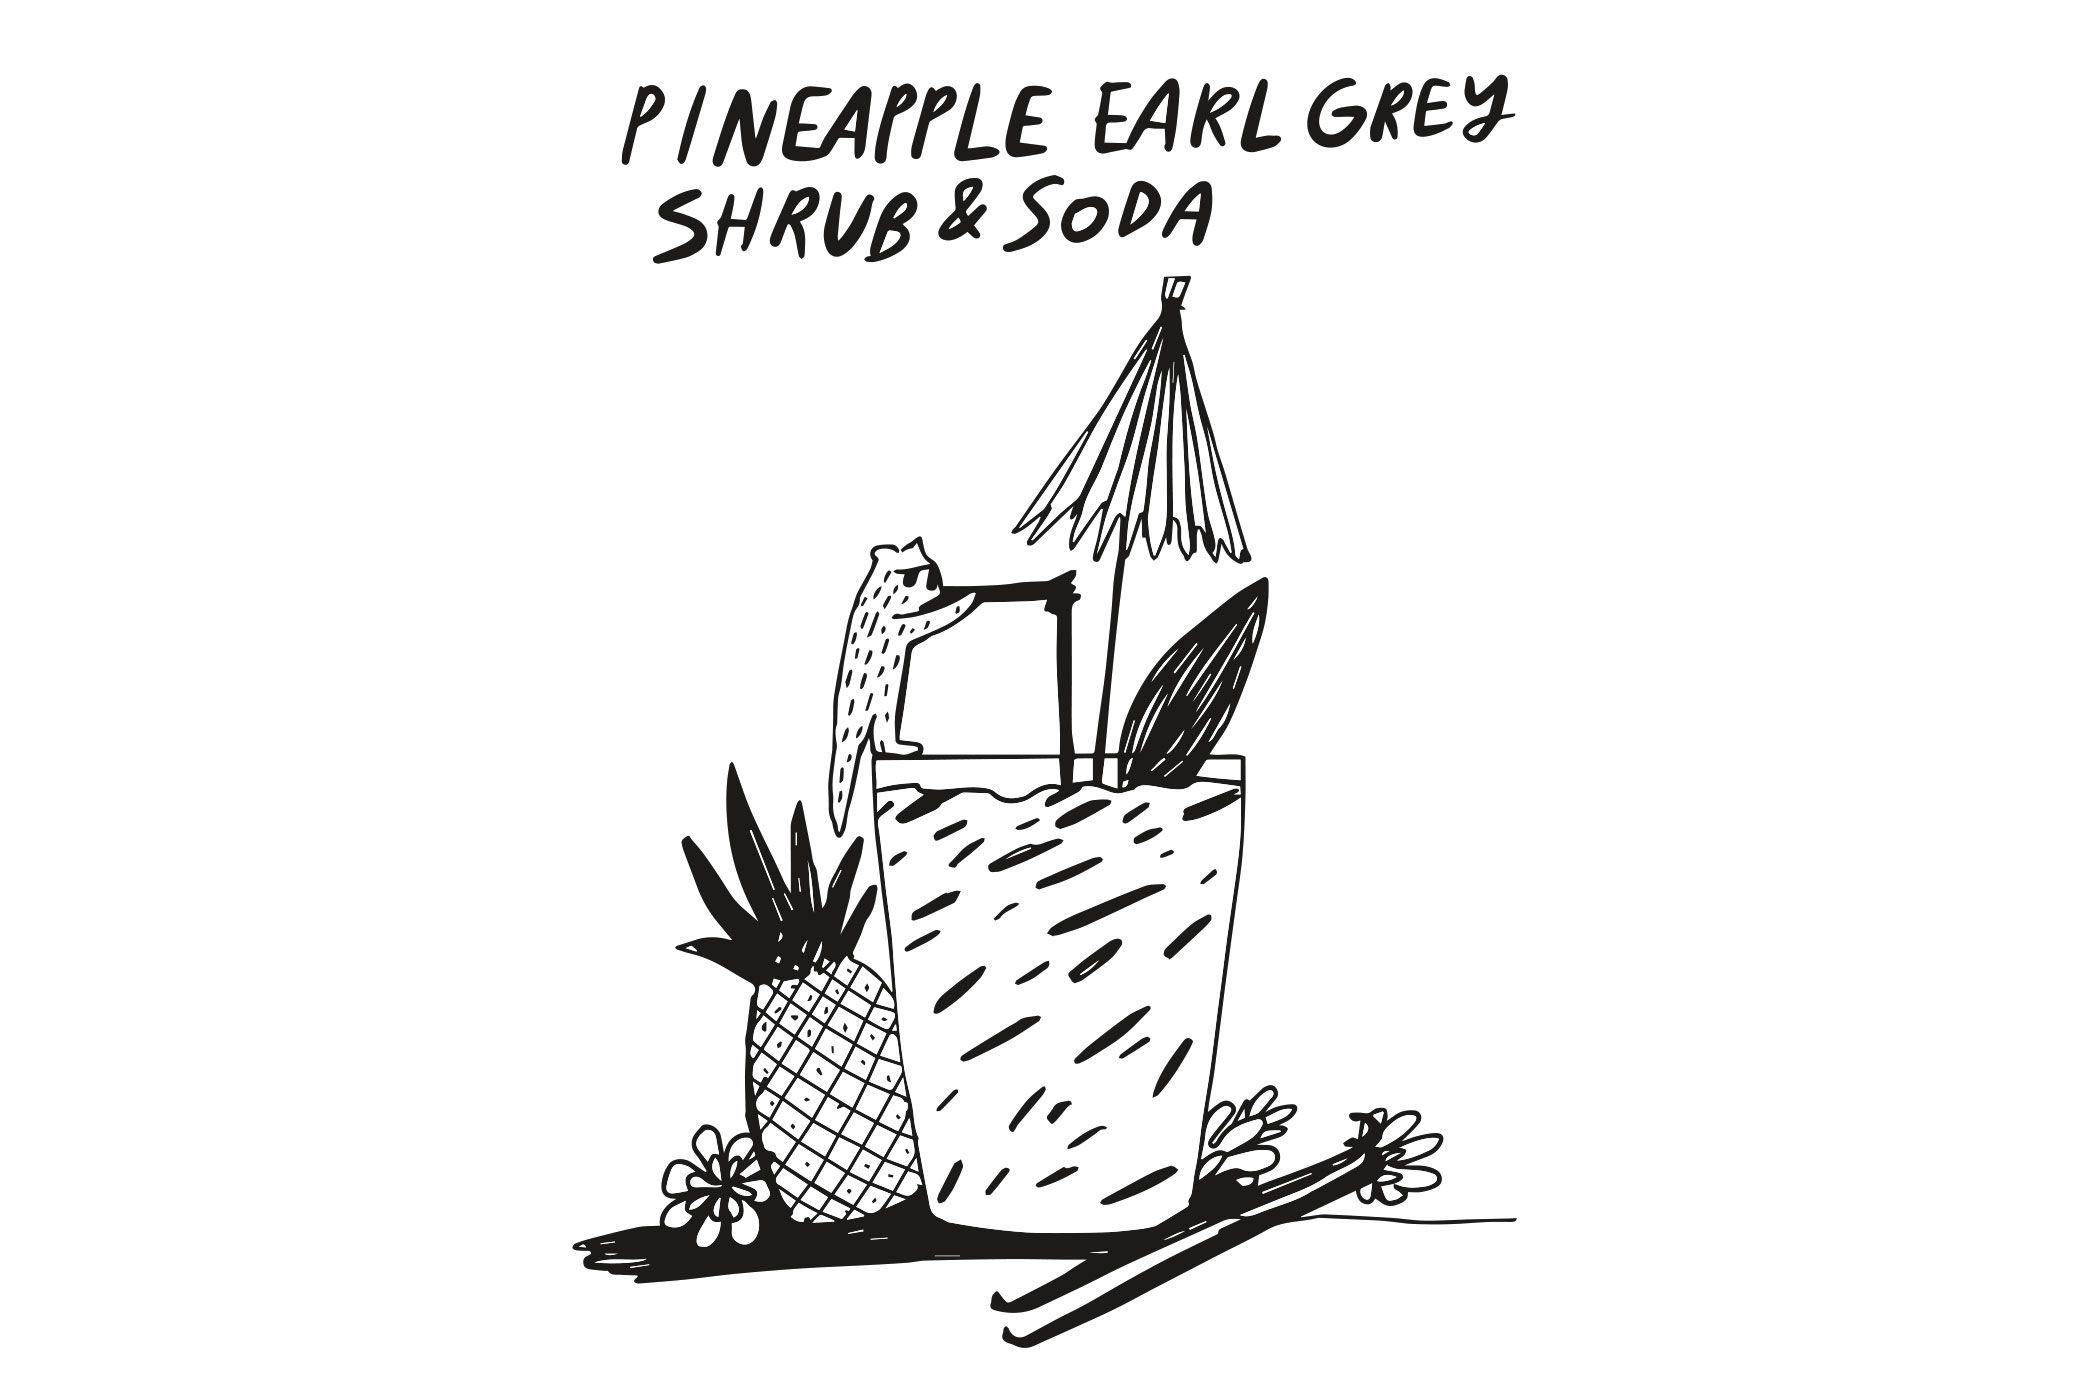 Pineapple Earl Grey Shrub Soda web2